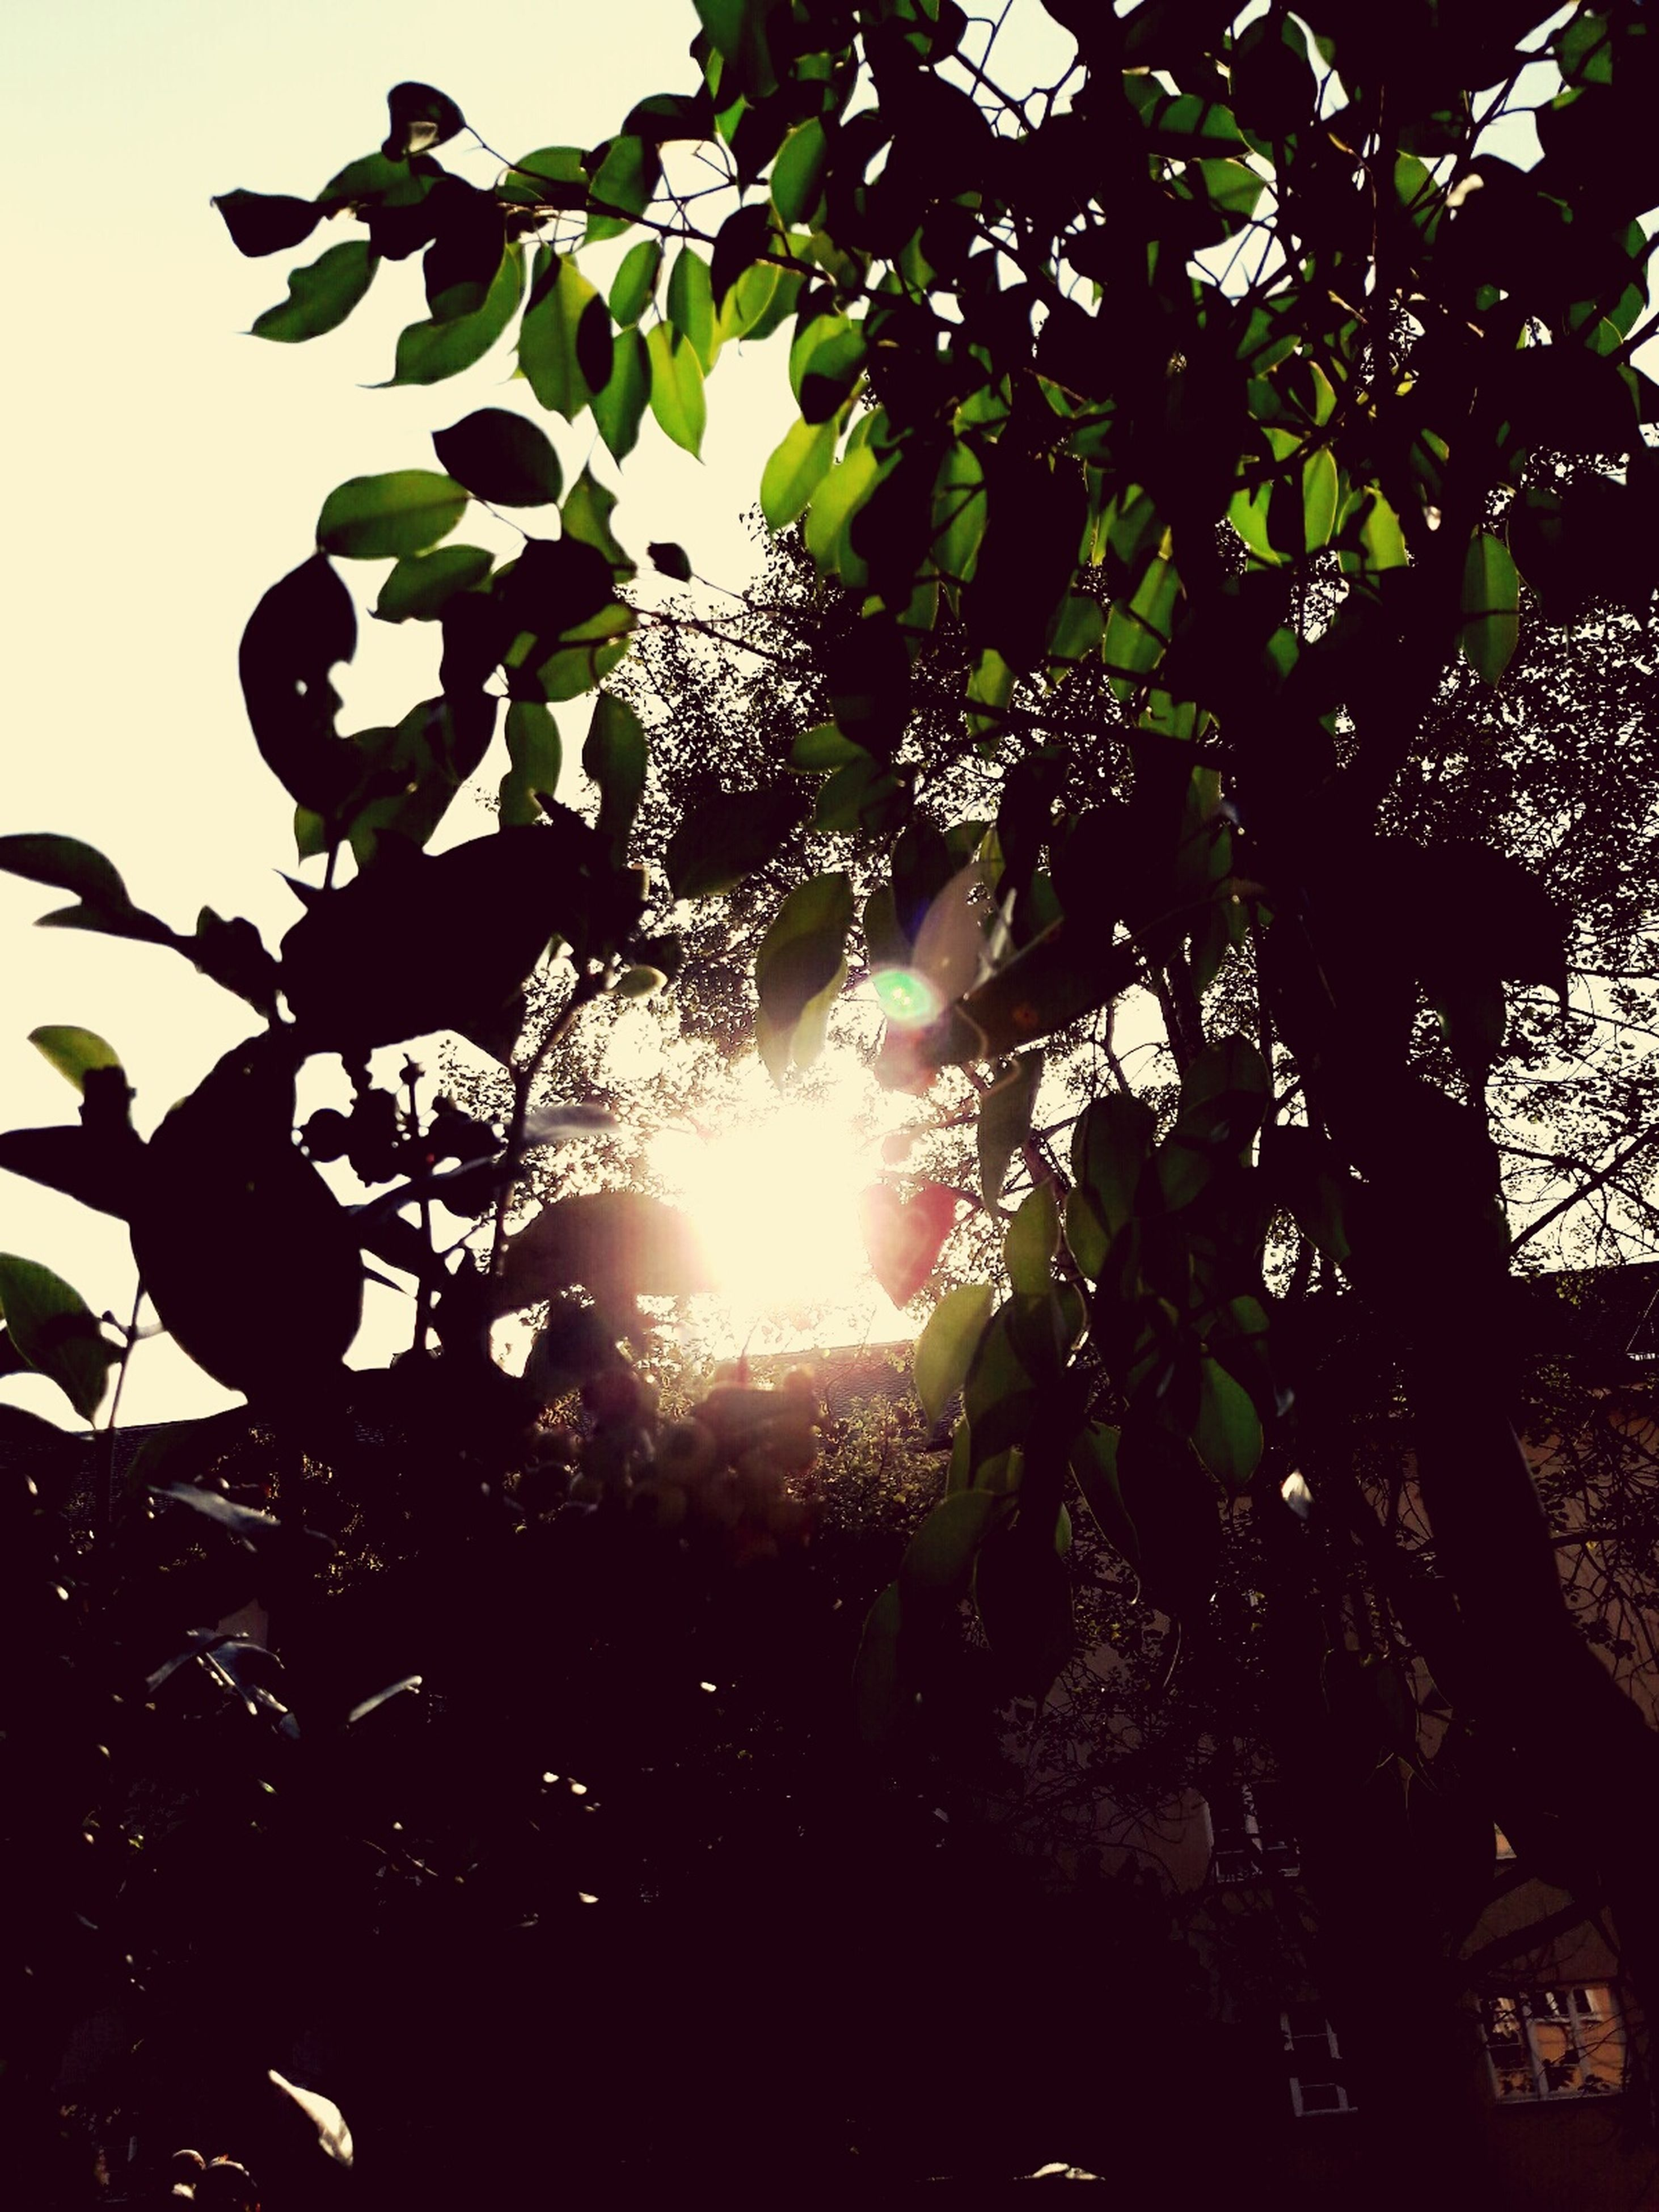 leaf, tree, sunlight, sun, growth, branch, low angle view, silhouette, sunbeam, plant, nature, day, beauty in nature, sky, bright, outdoors, lens flare, scenics, back lit, leaves, outline, tranquility, high section, no people, tranquil scene